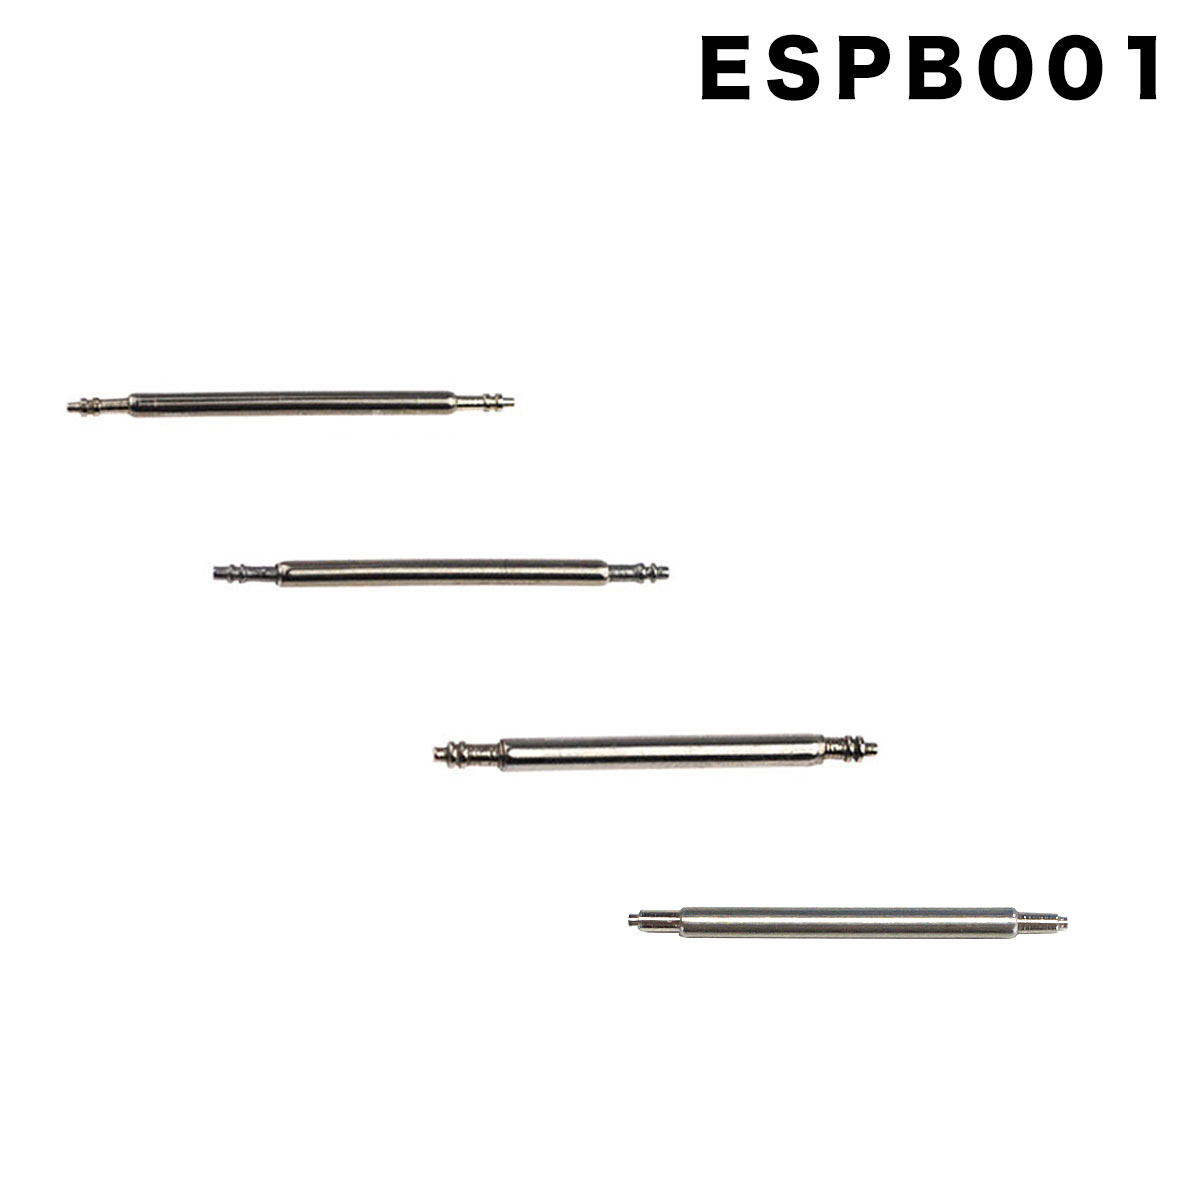 Watch for spring Rod stainless steel tools part parts aftermarket parts generic [Eight-ESPB 001, 10P01Oct16